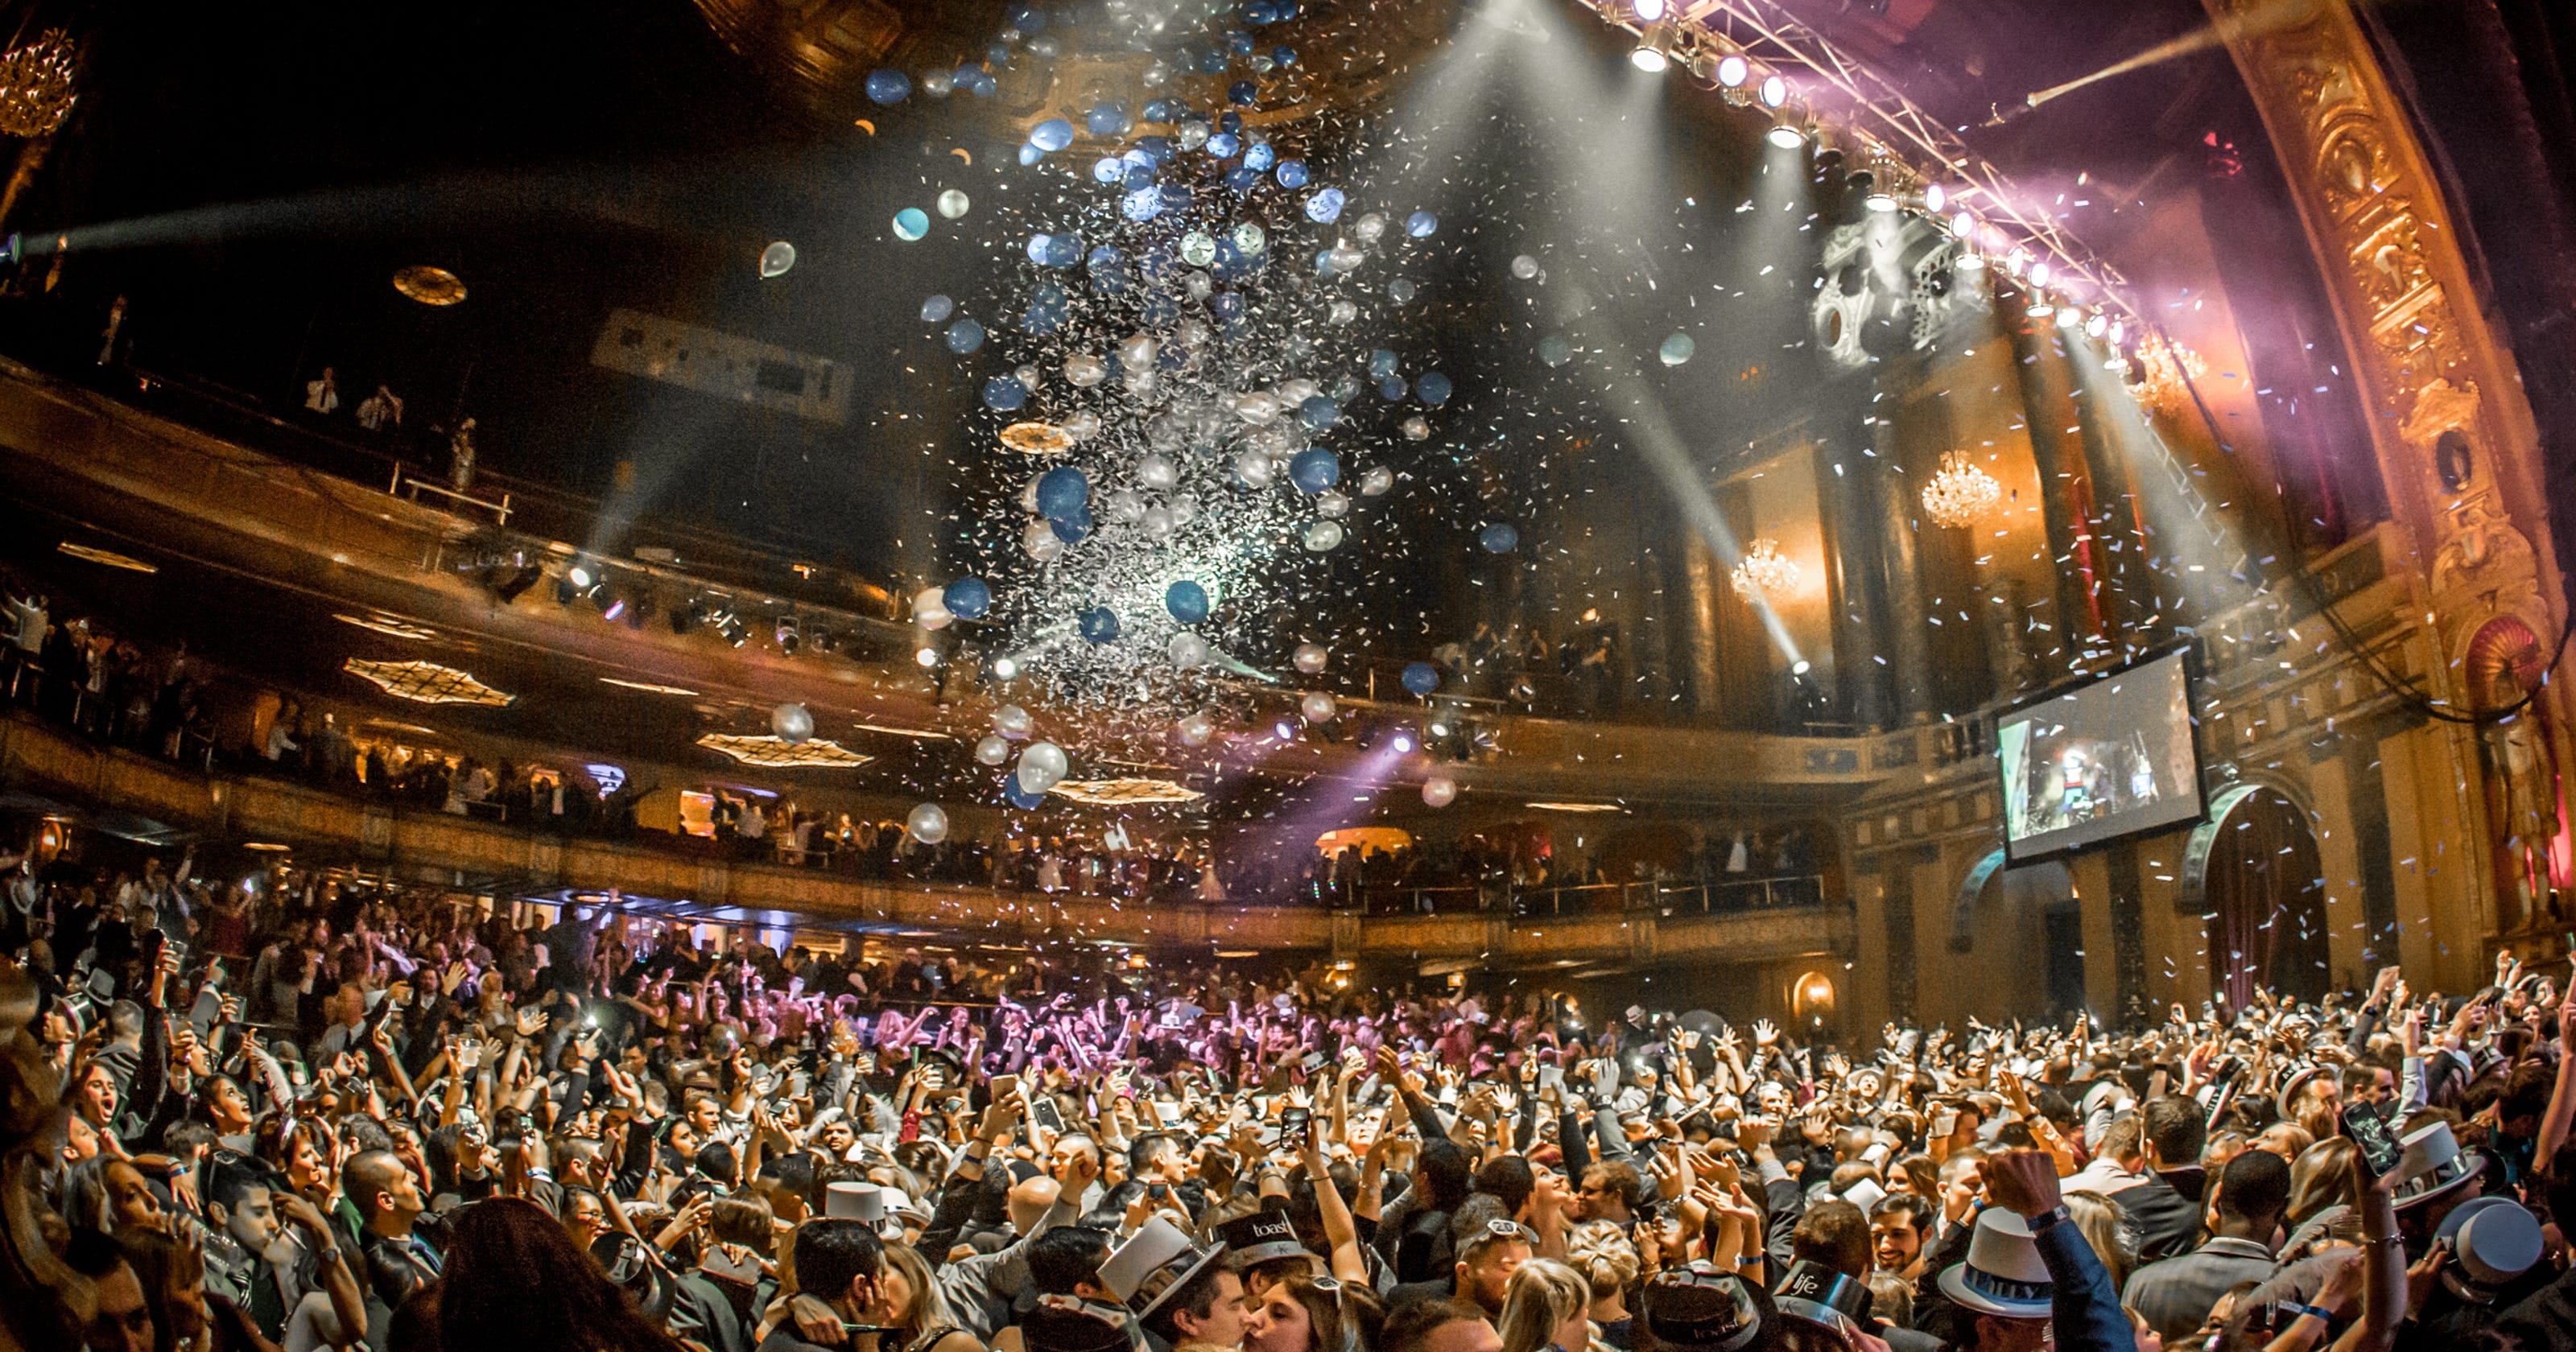 Things to do on New Year's Eve in metro Detroit